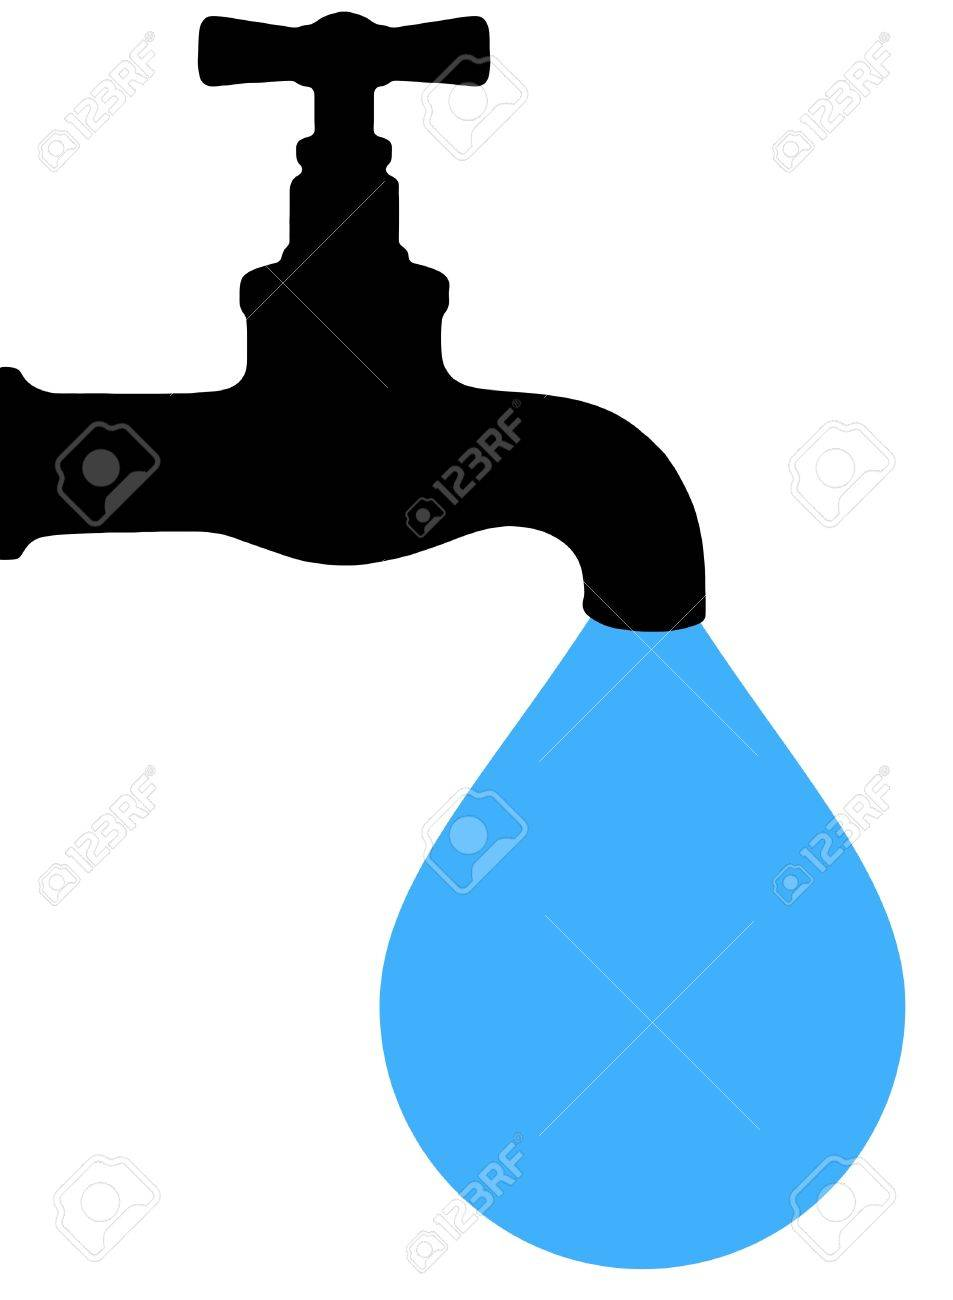 Illustration Of A Tap With A Large Blue Drip Of Water Stock Photo ...